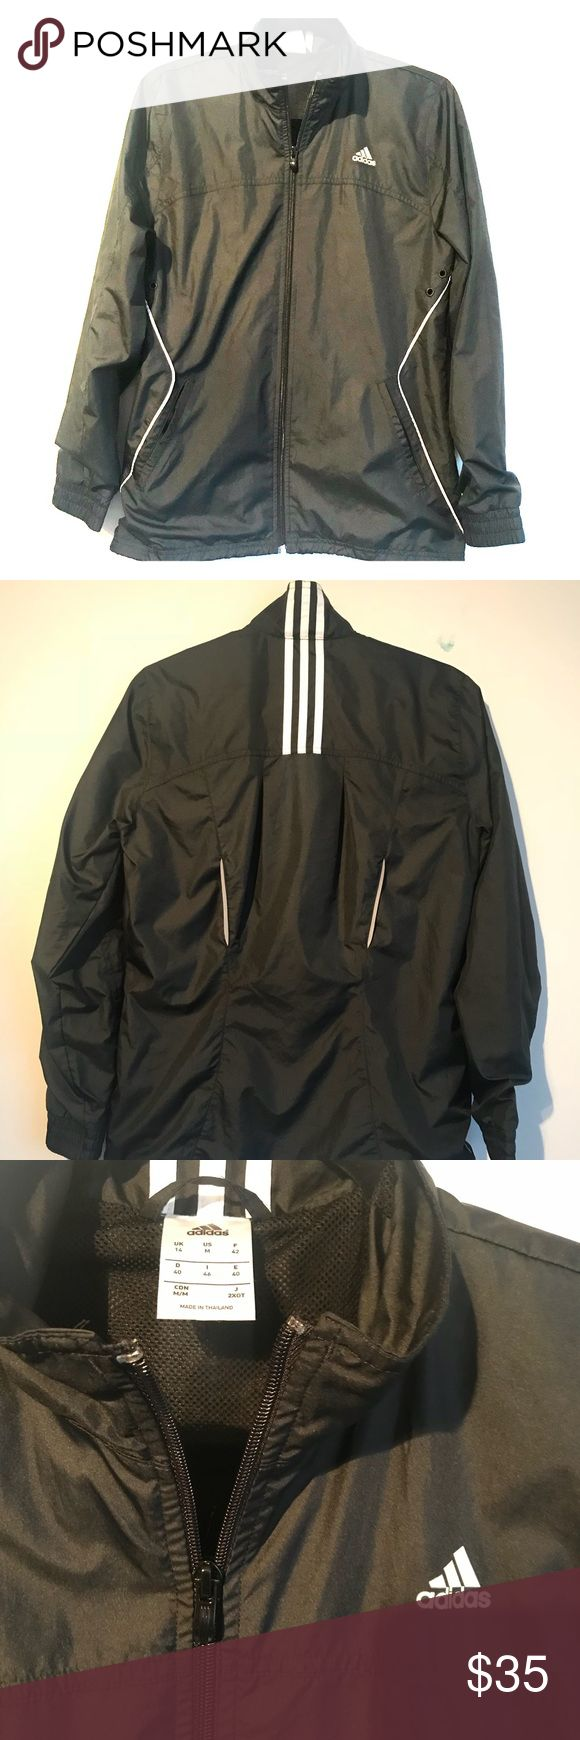 Adidas Women's running Jacket Adidas Women's running Jacket Color: Black with white straps in the back  Size: Medium  Great Conditions, doesn't show any damages. adidas Jackets & Coats Utility Jackets